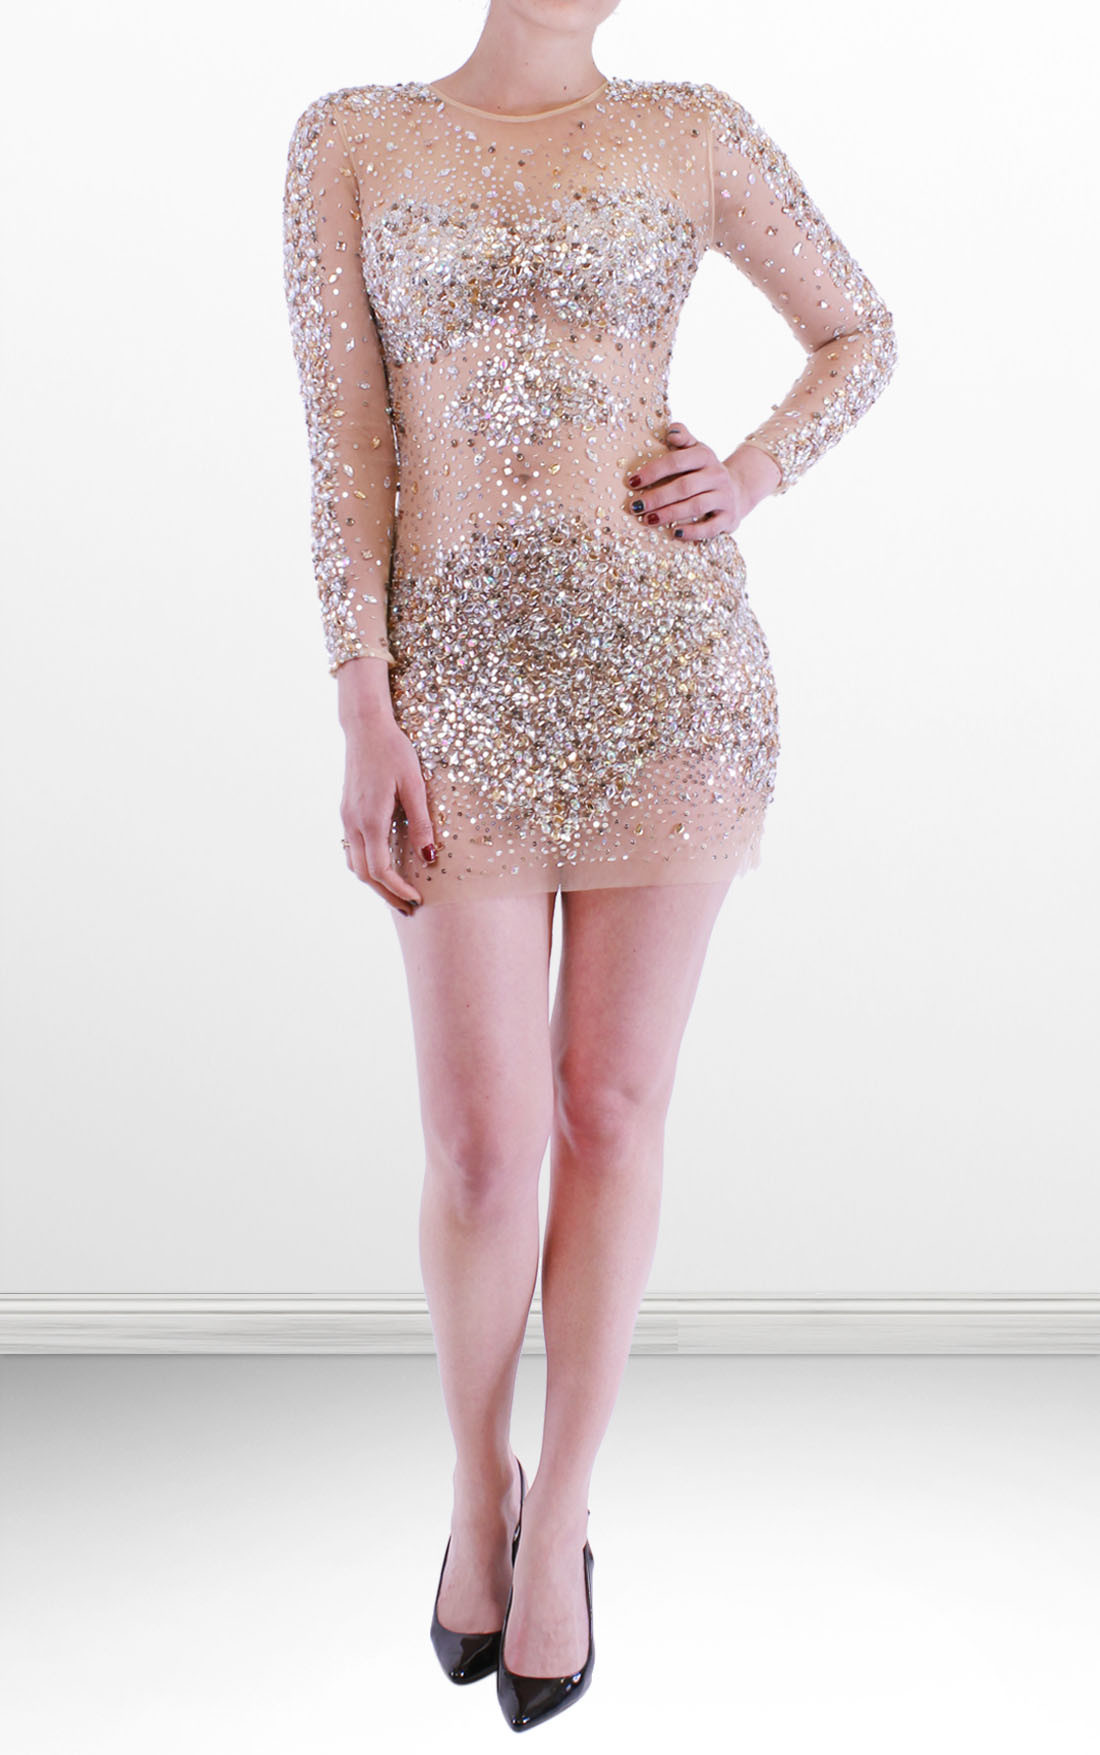 Jovani - Sheer Stone Embellished Nude Short Dress (7757)